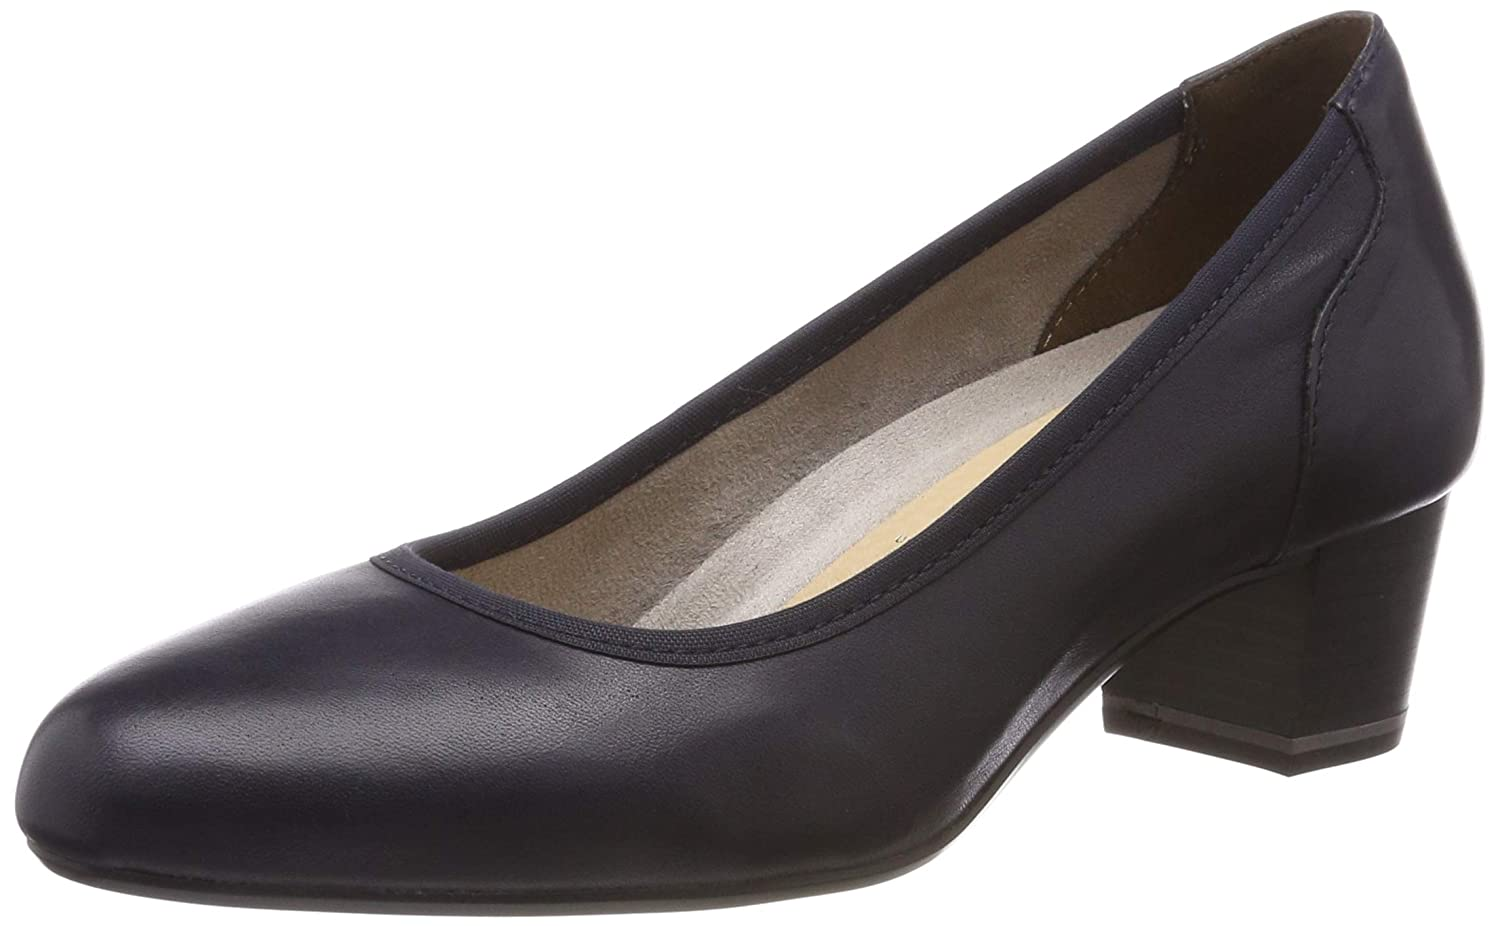 Blau (Navy Leather 848) Tamaris Damen 1-1-22301-22 Pumps